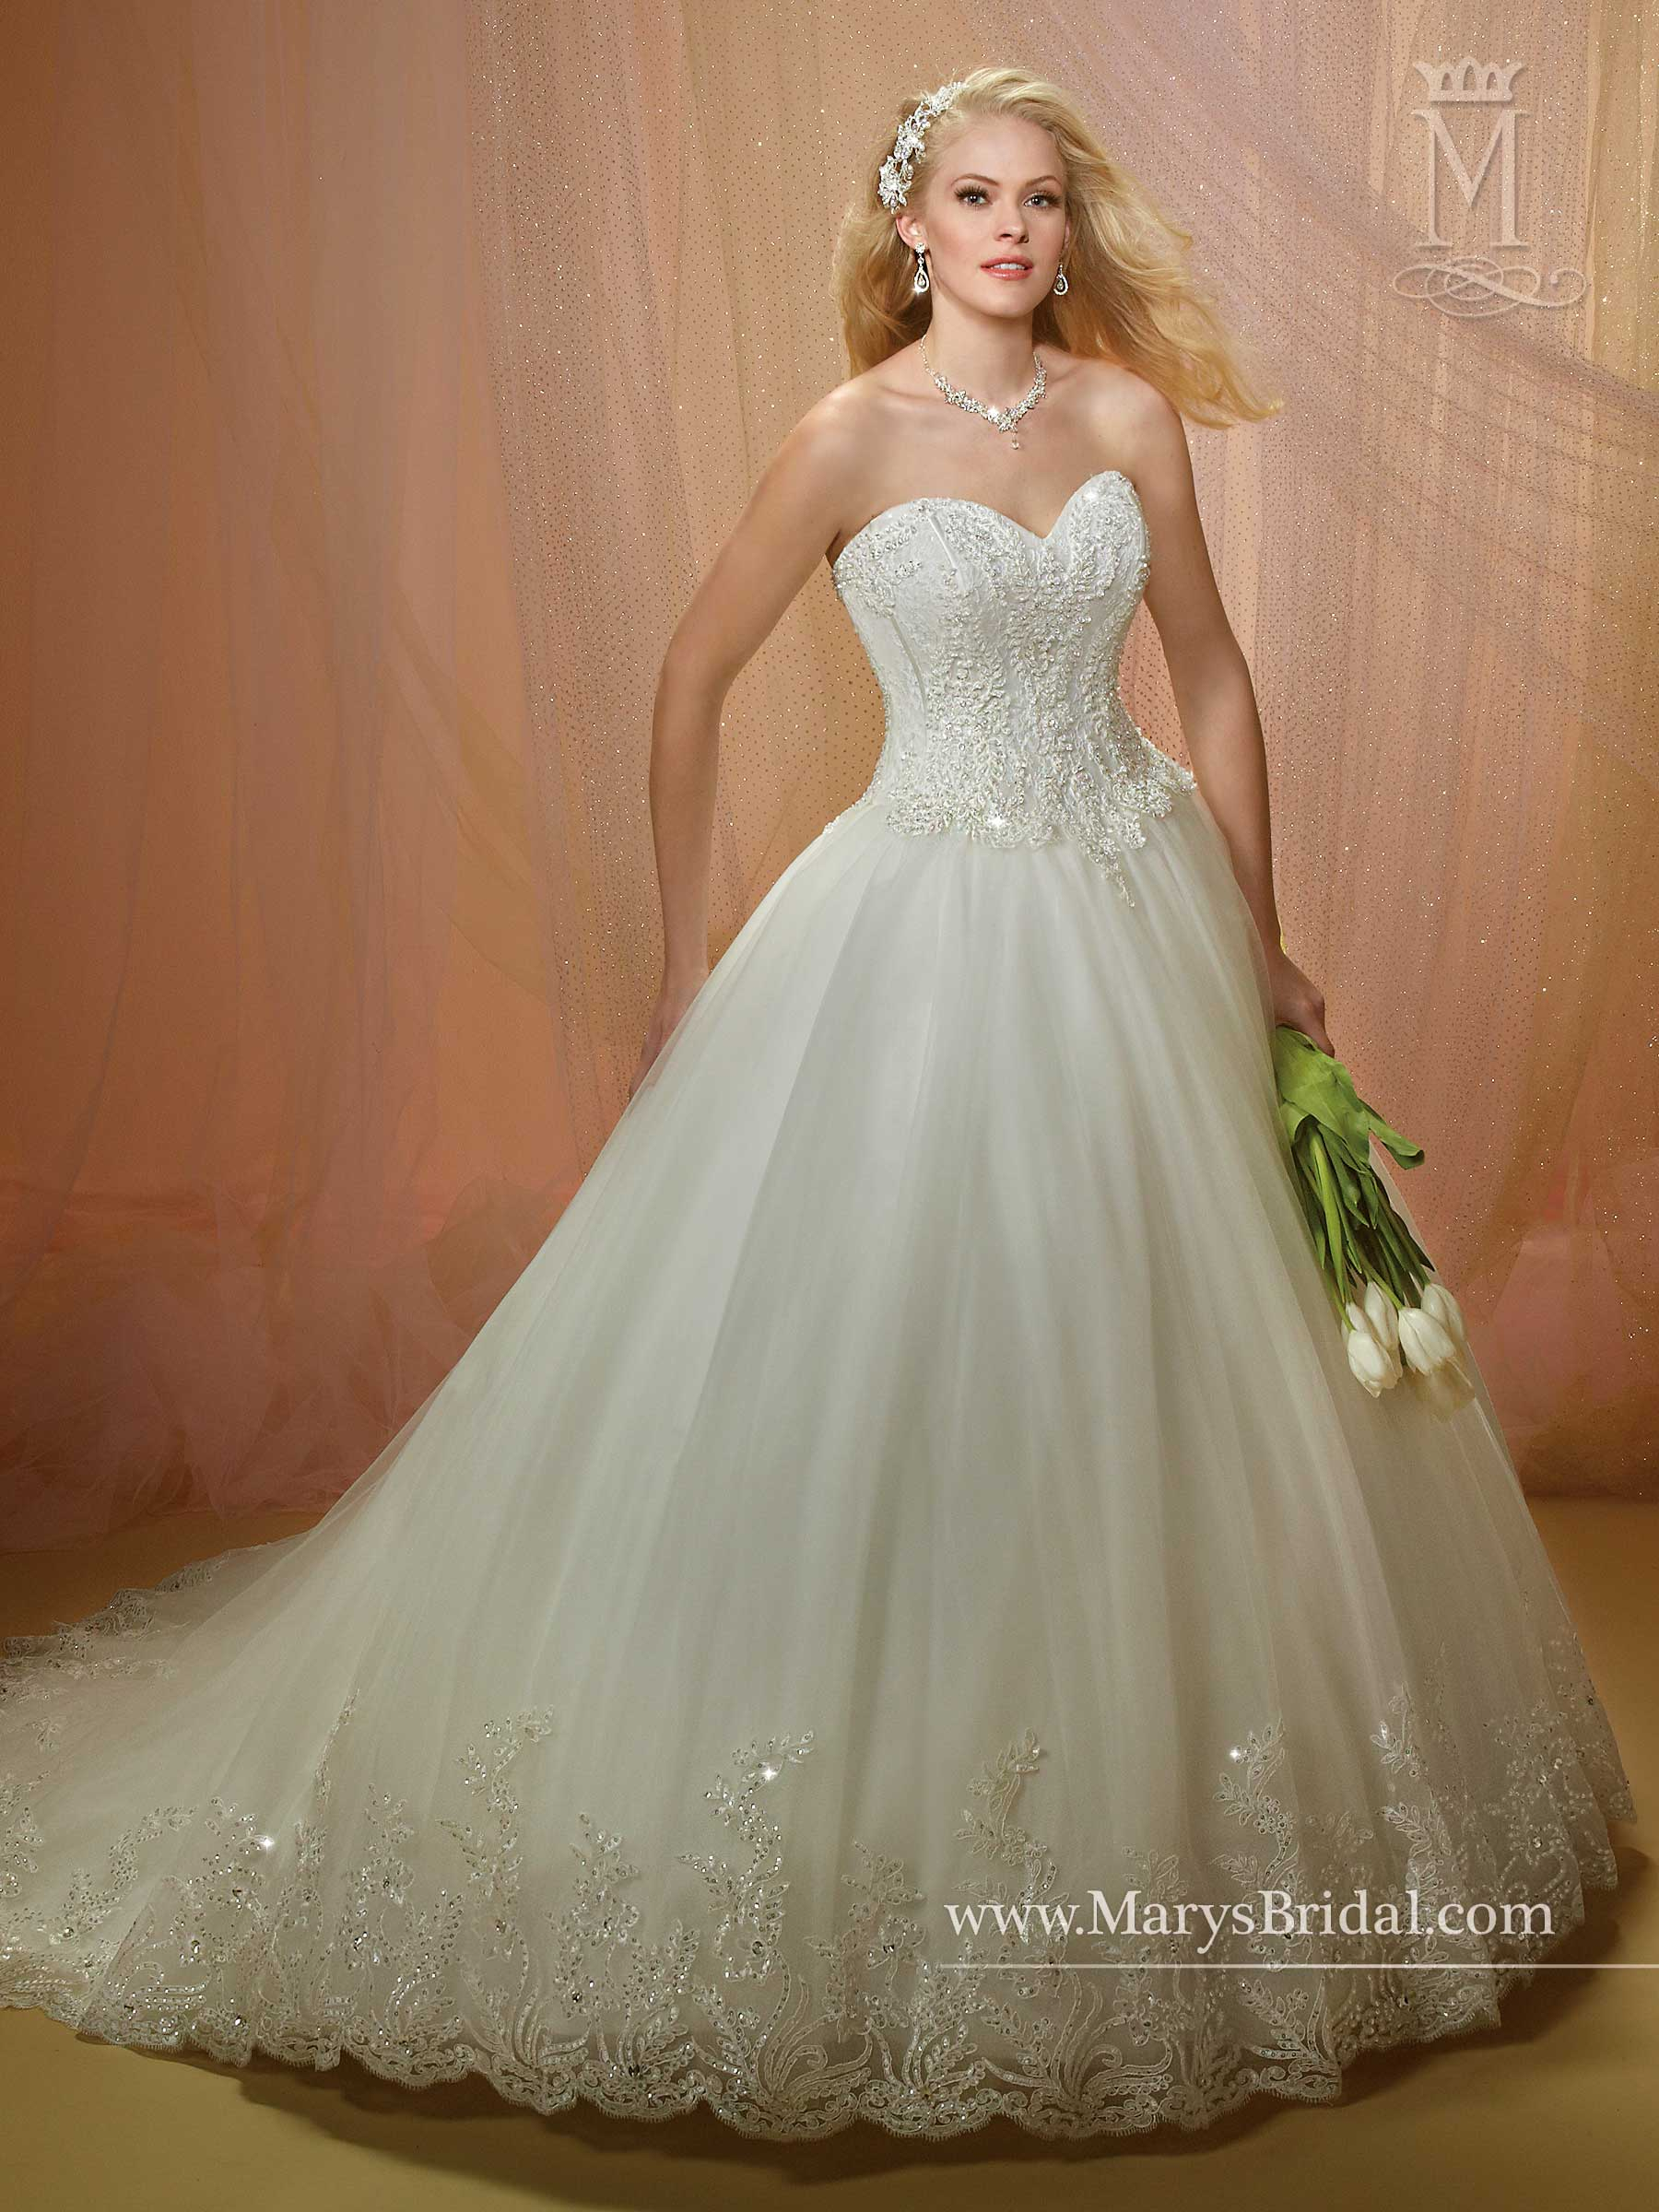 bbd57dfded0a Bridal Wedding Dresses | Style - 6480 in Ivory or White Color